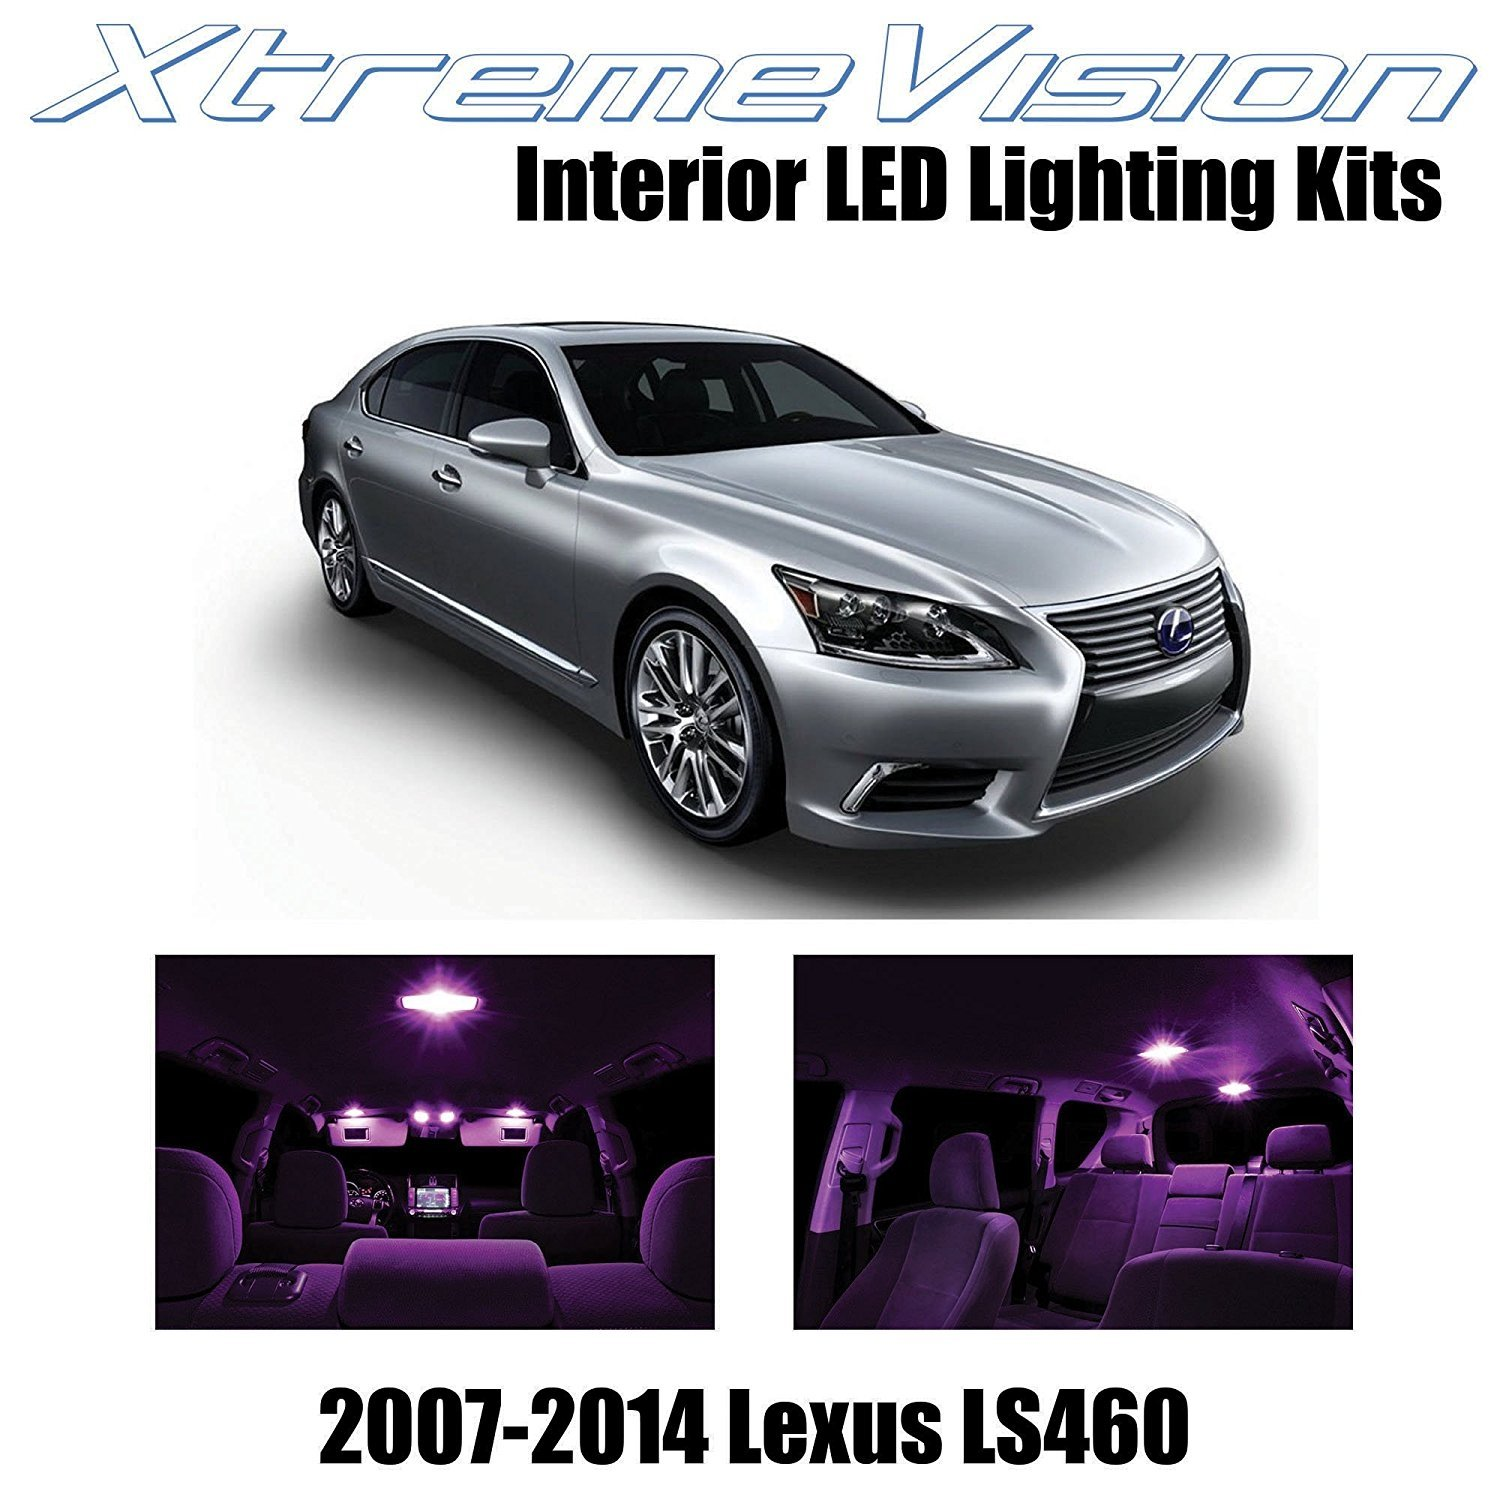 XtremeVision LED for Lexus LS460 LS600h 2007-2014 (13 Pieces) Pure White Premium Interior LED Kit Package + Installation Tool